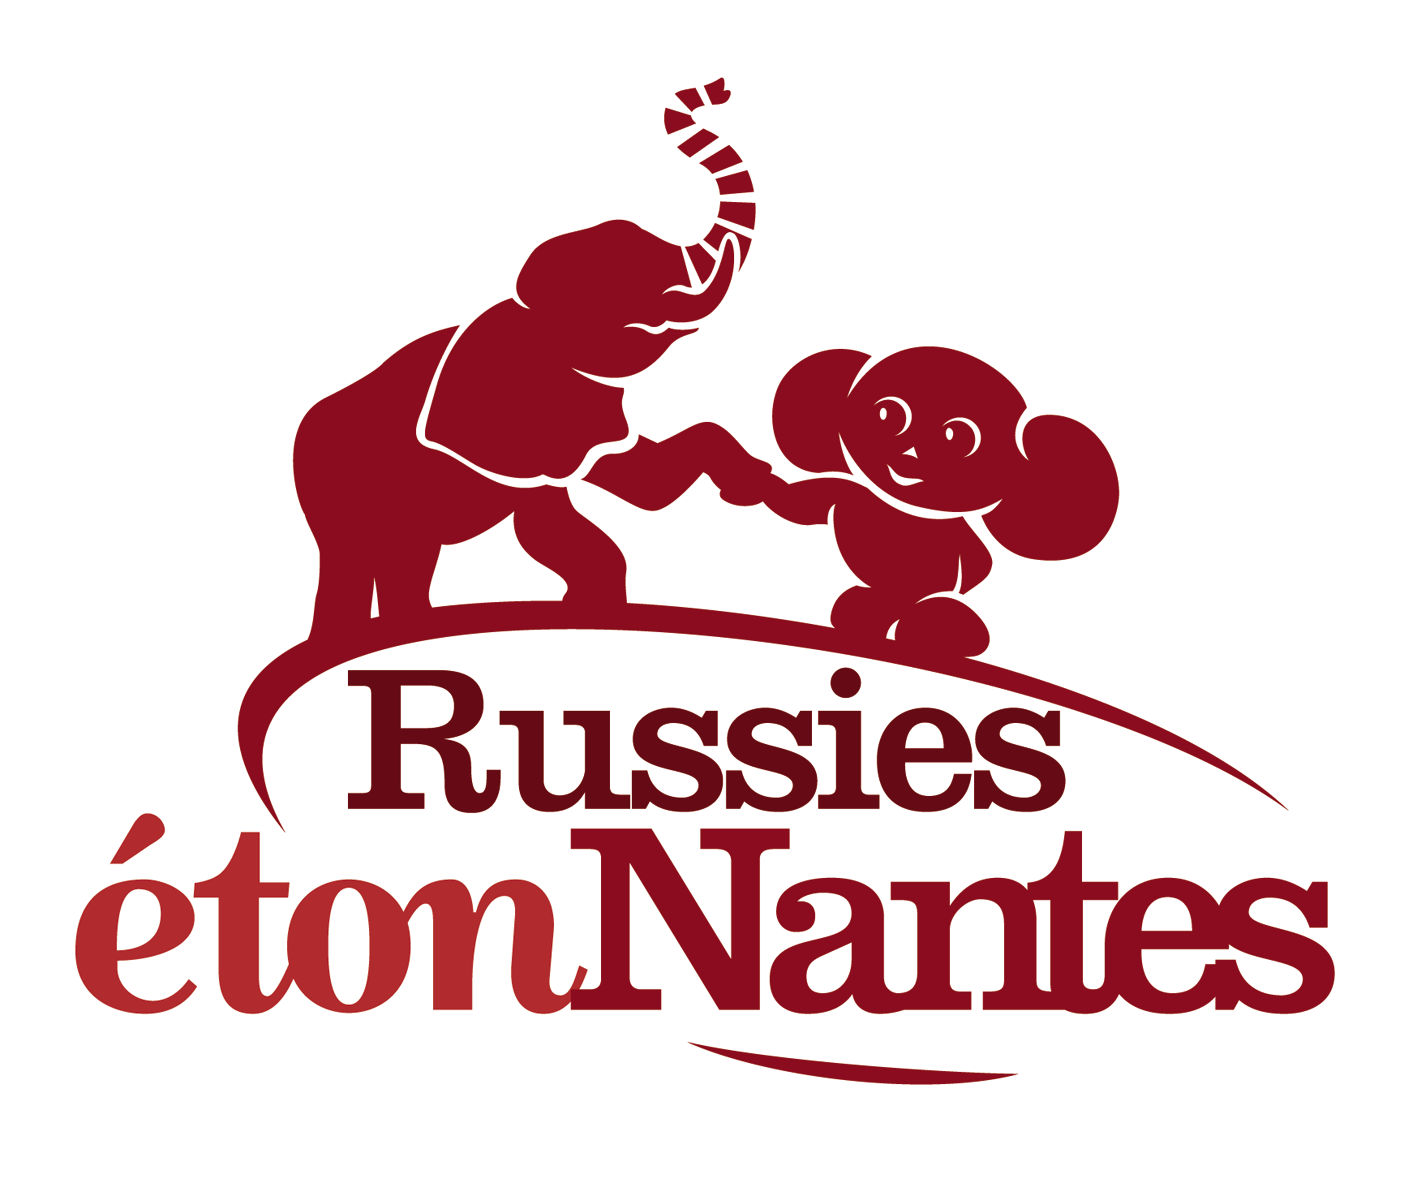 Association Russies étonNantes